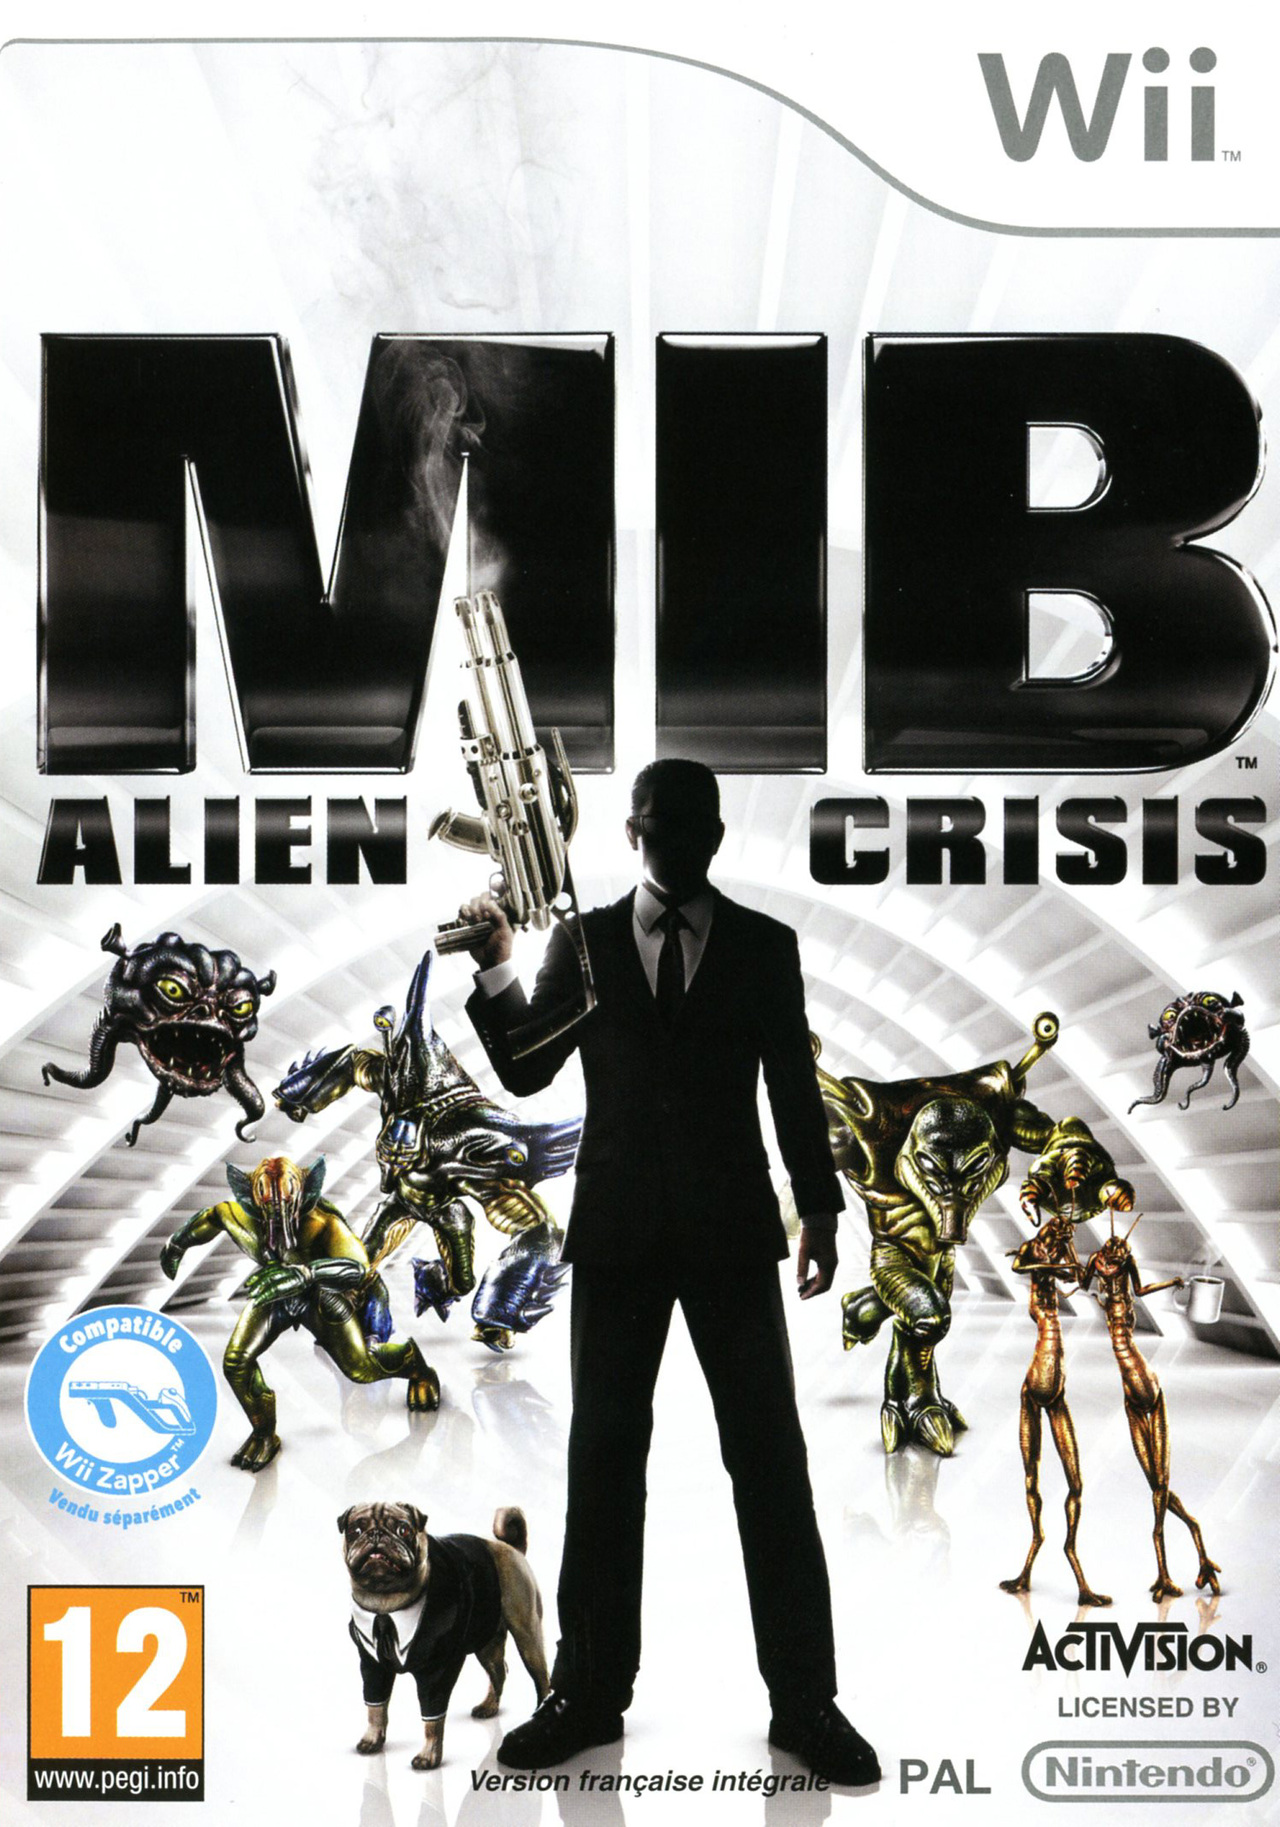 jeuxvideo.com Men in Black : Alien Crisis - Wii Image 1 sur 51